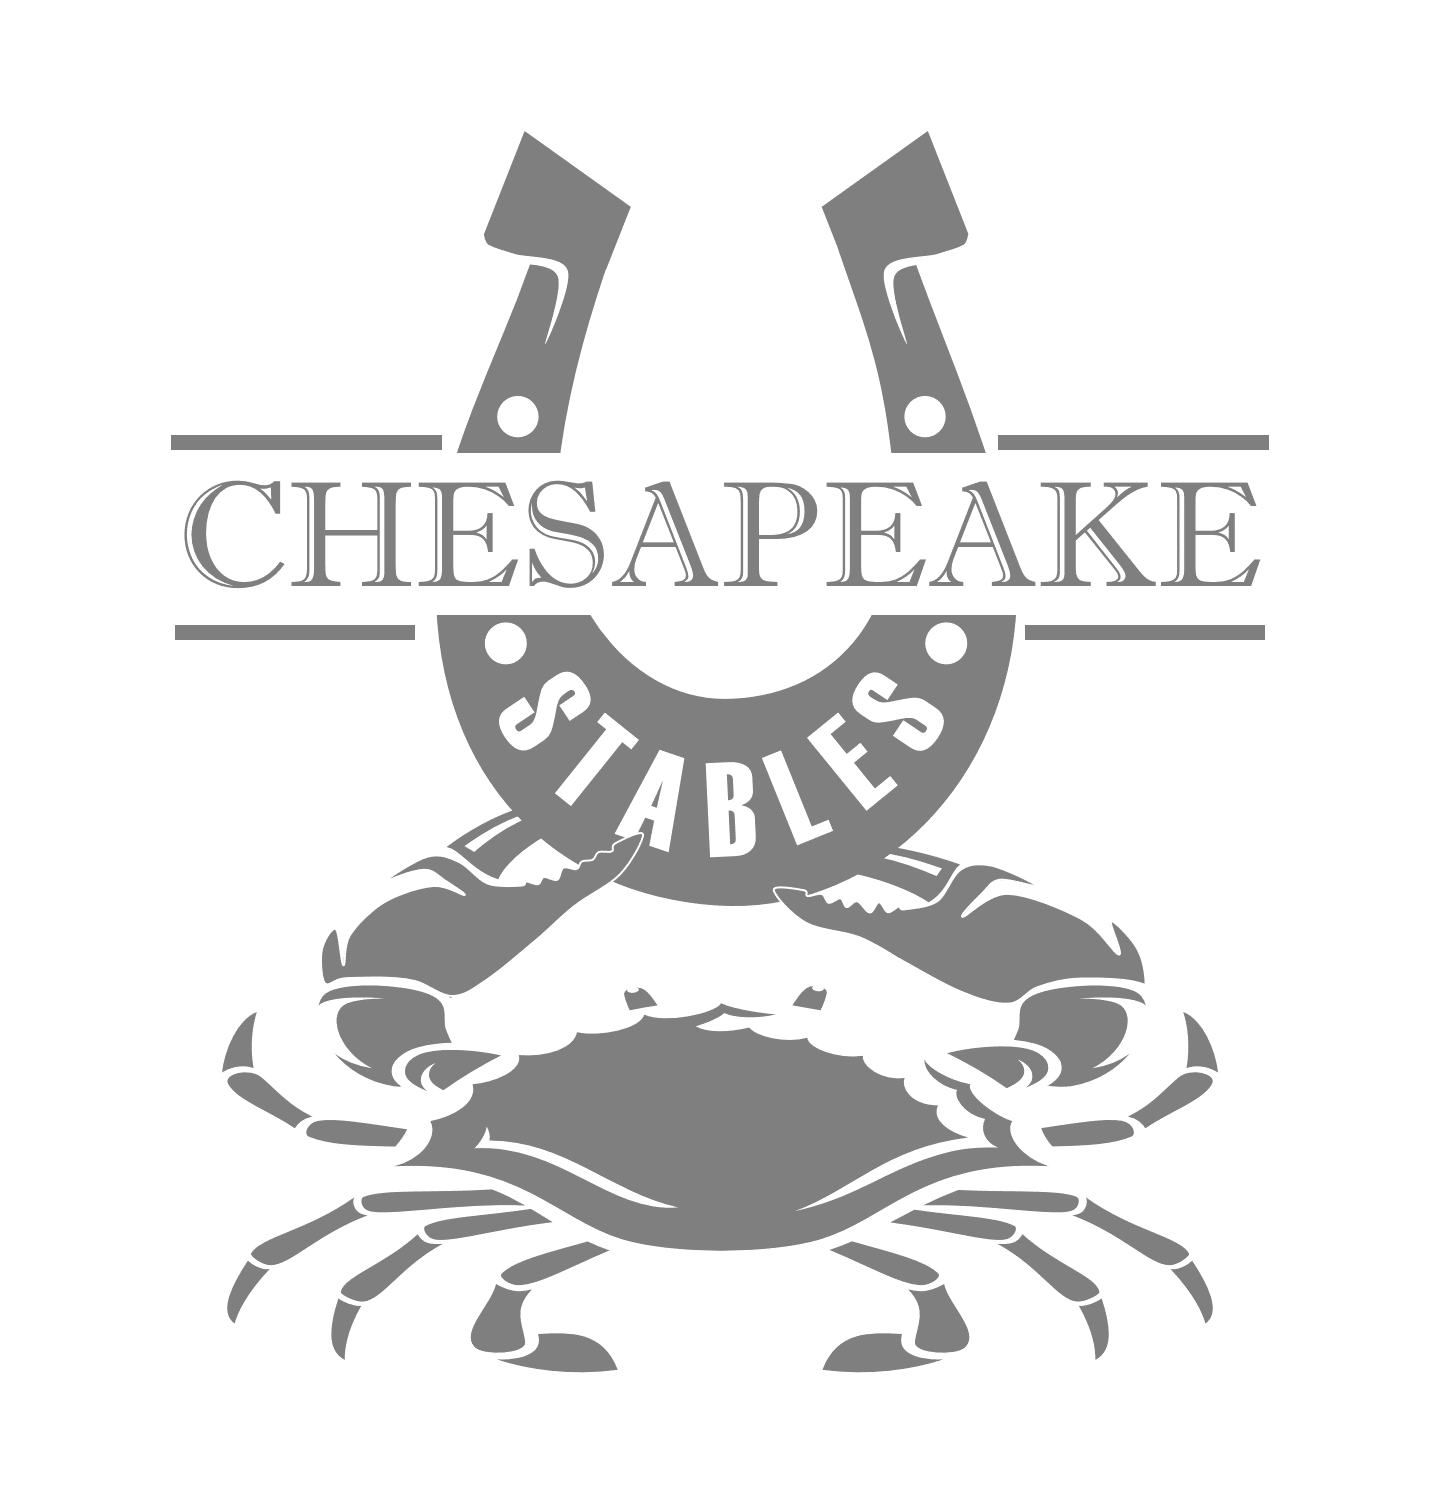 chesapeakestables_logo.png